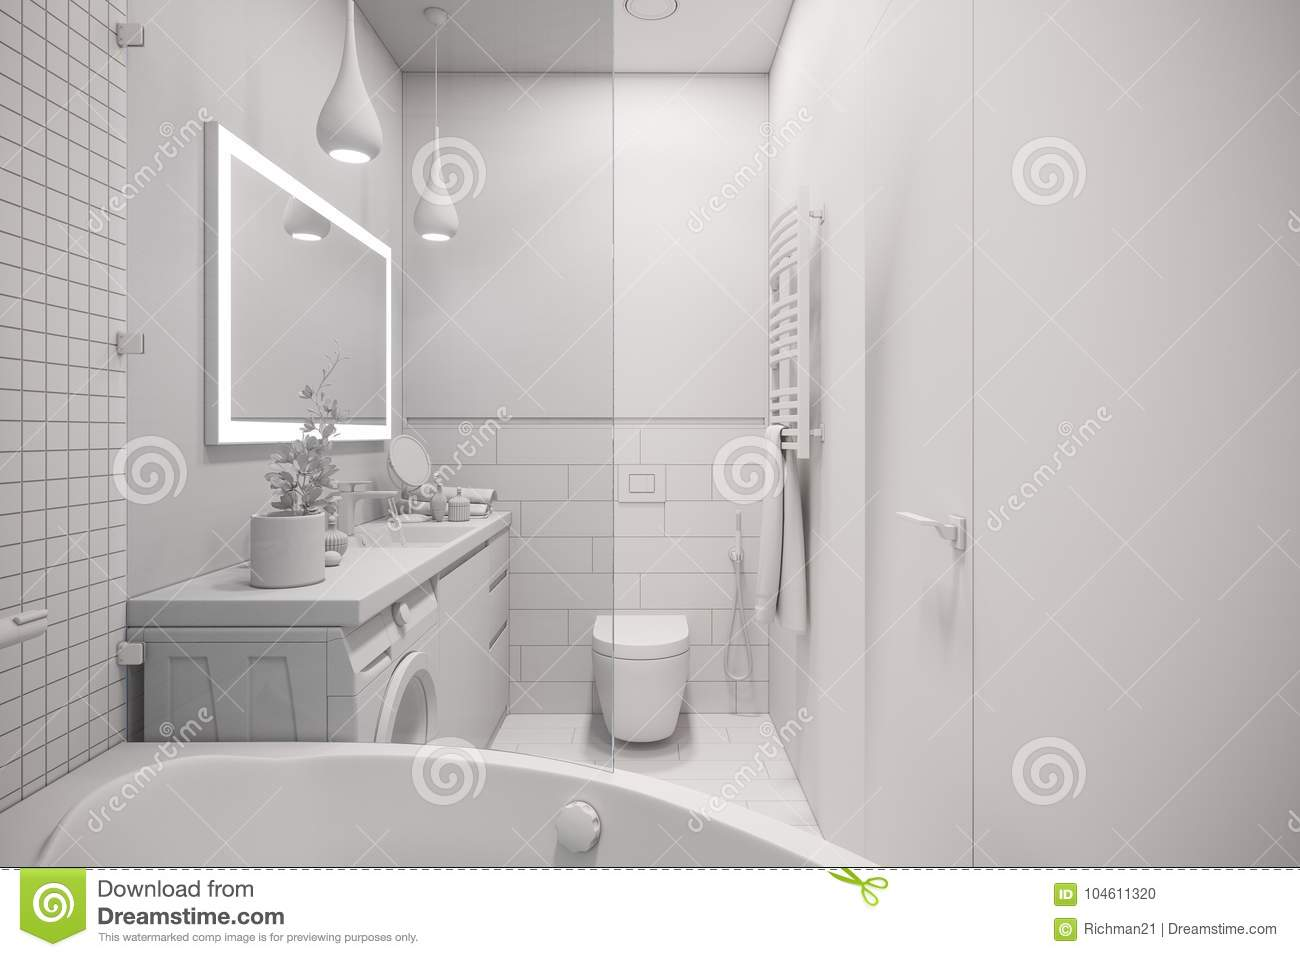 3d Illustration Of An Interior Design Of A White Minimalist Bath ...